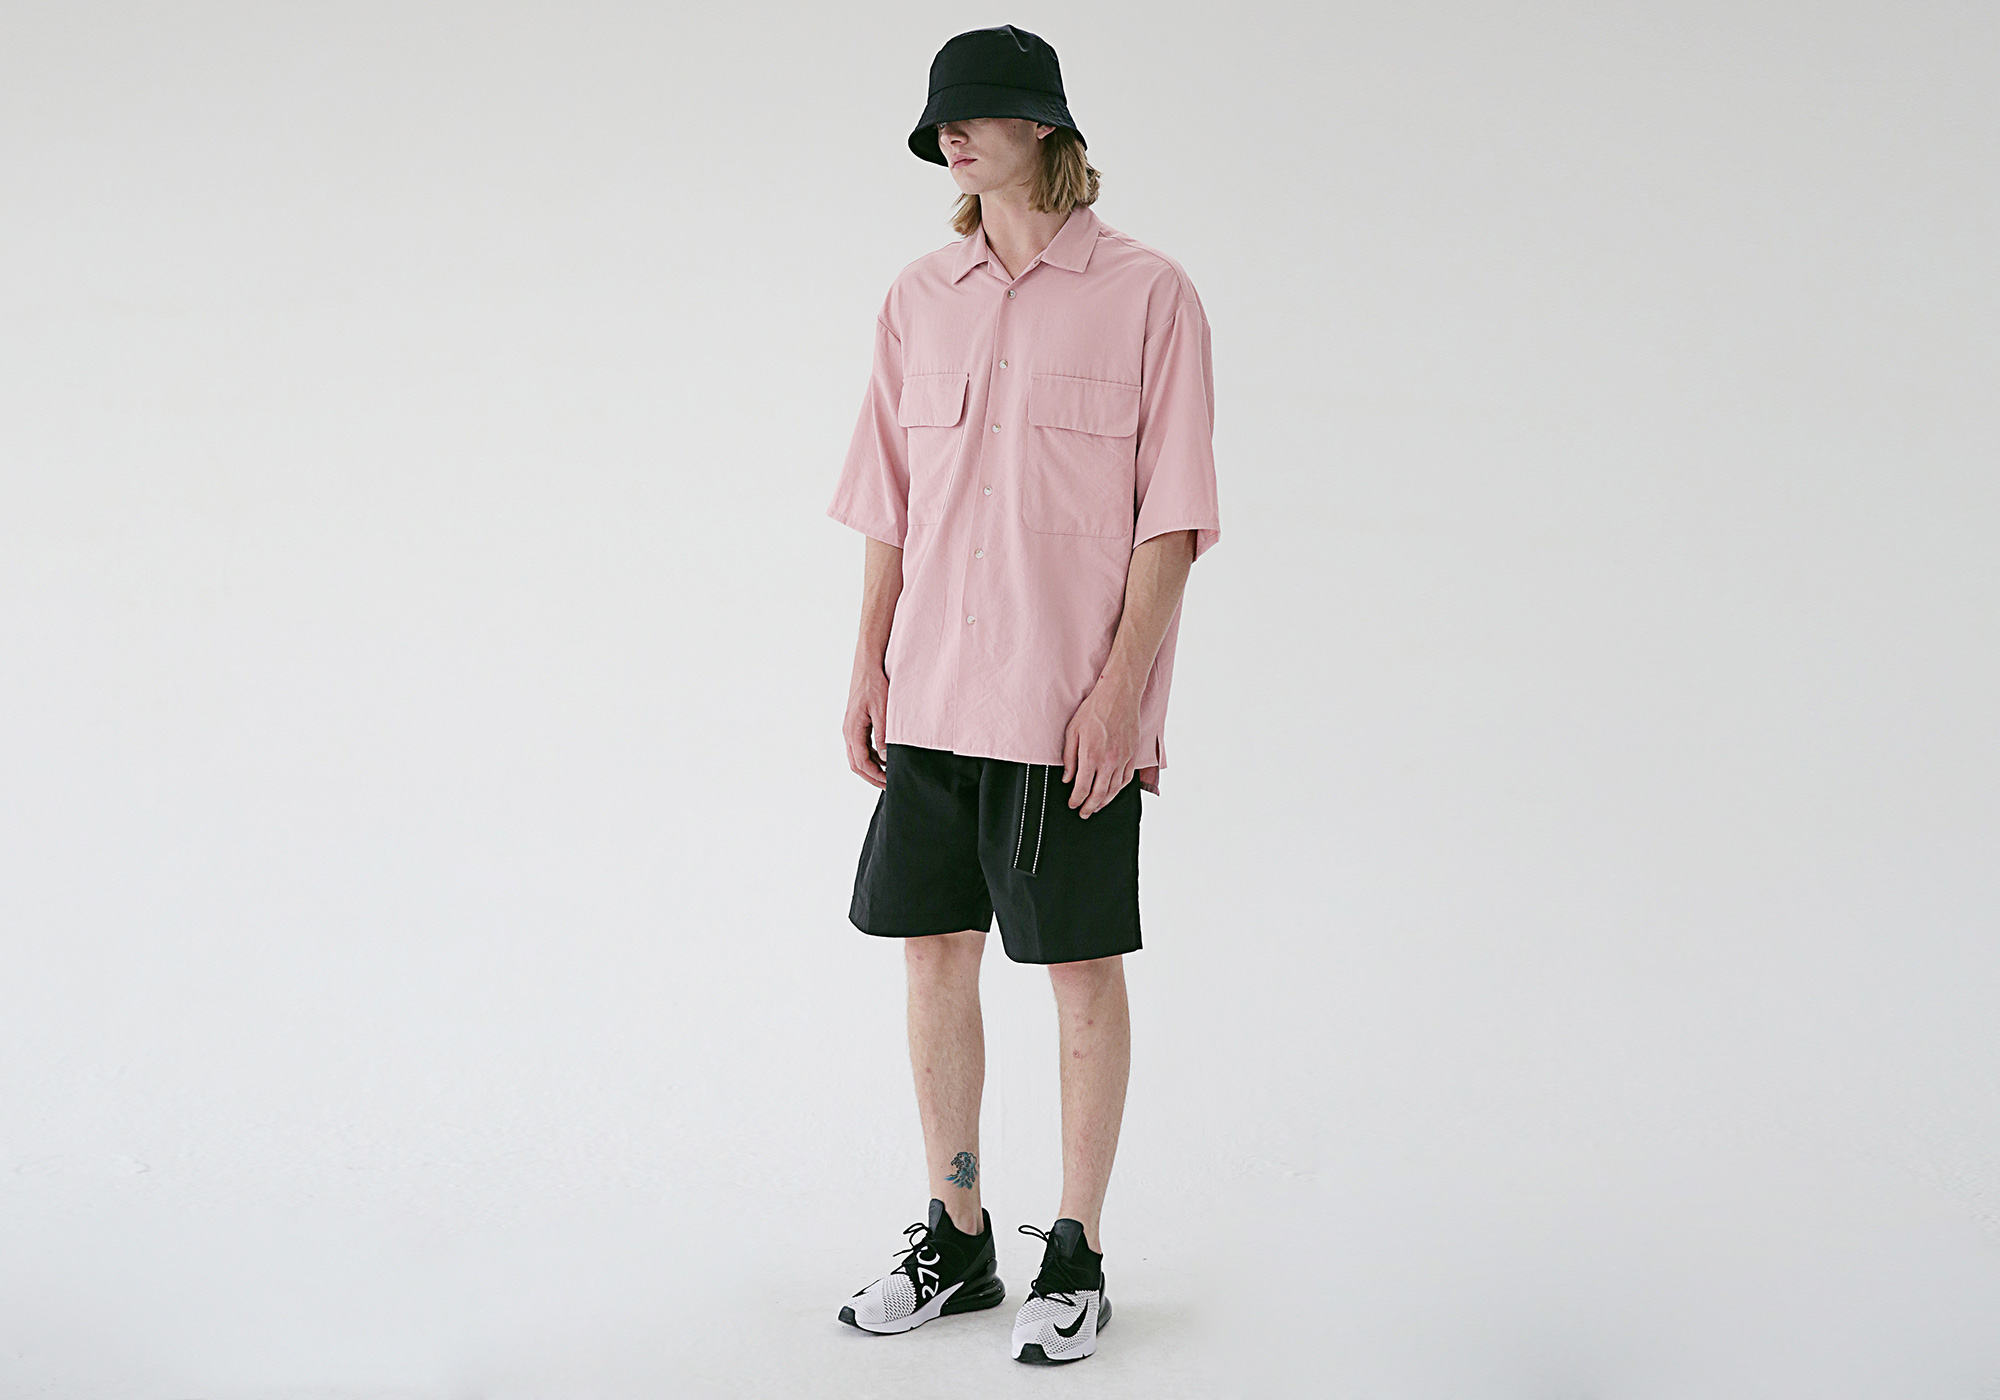 2018 Spring & Summer 2nd LookBook